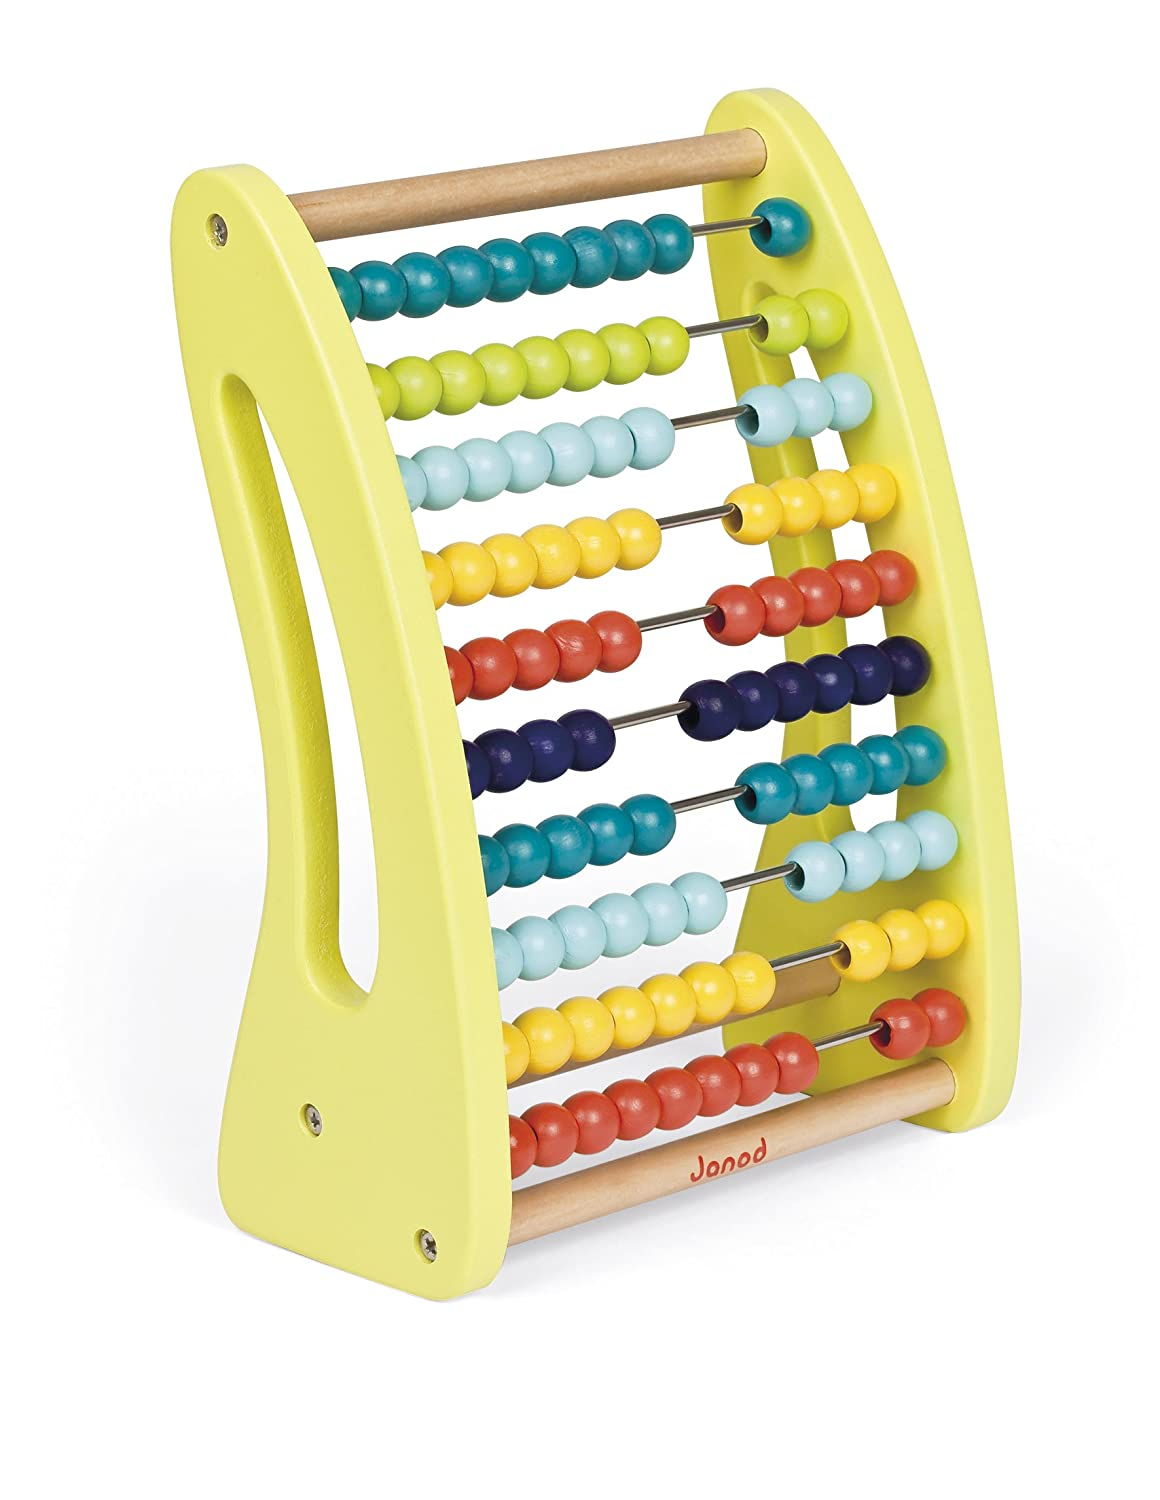 Janod Abacus Tattoo Toy J05375